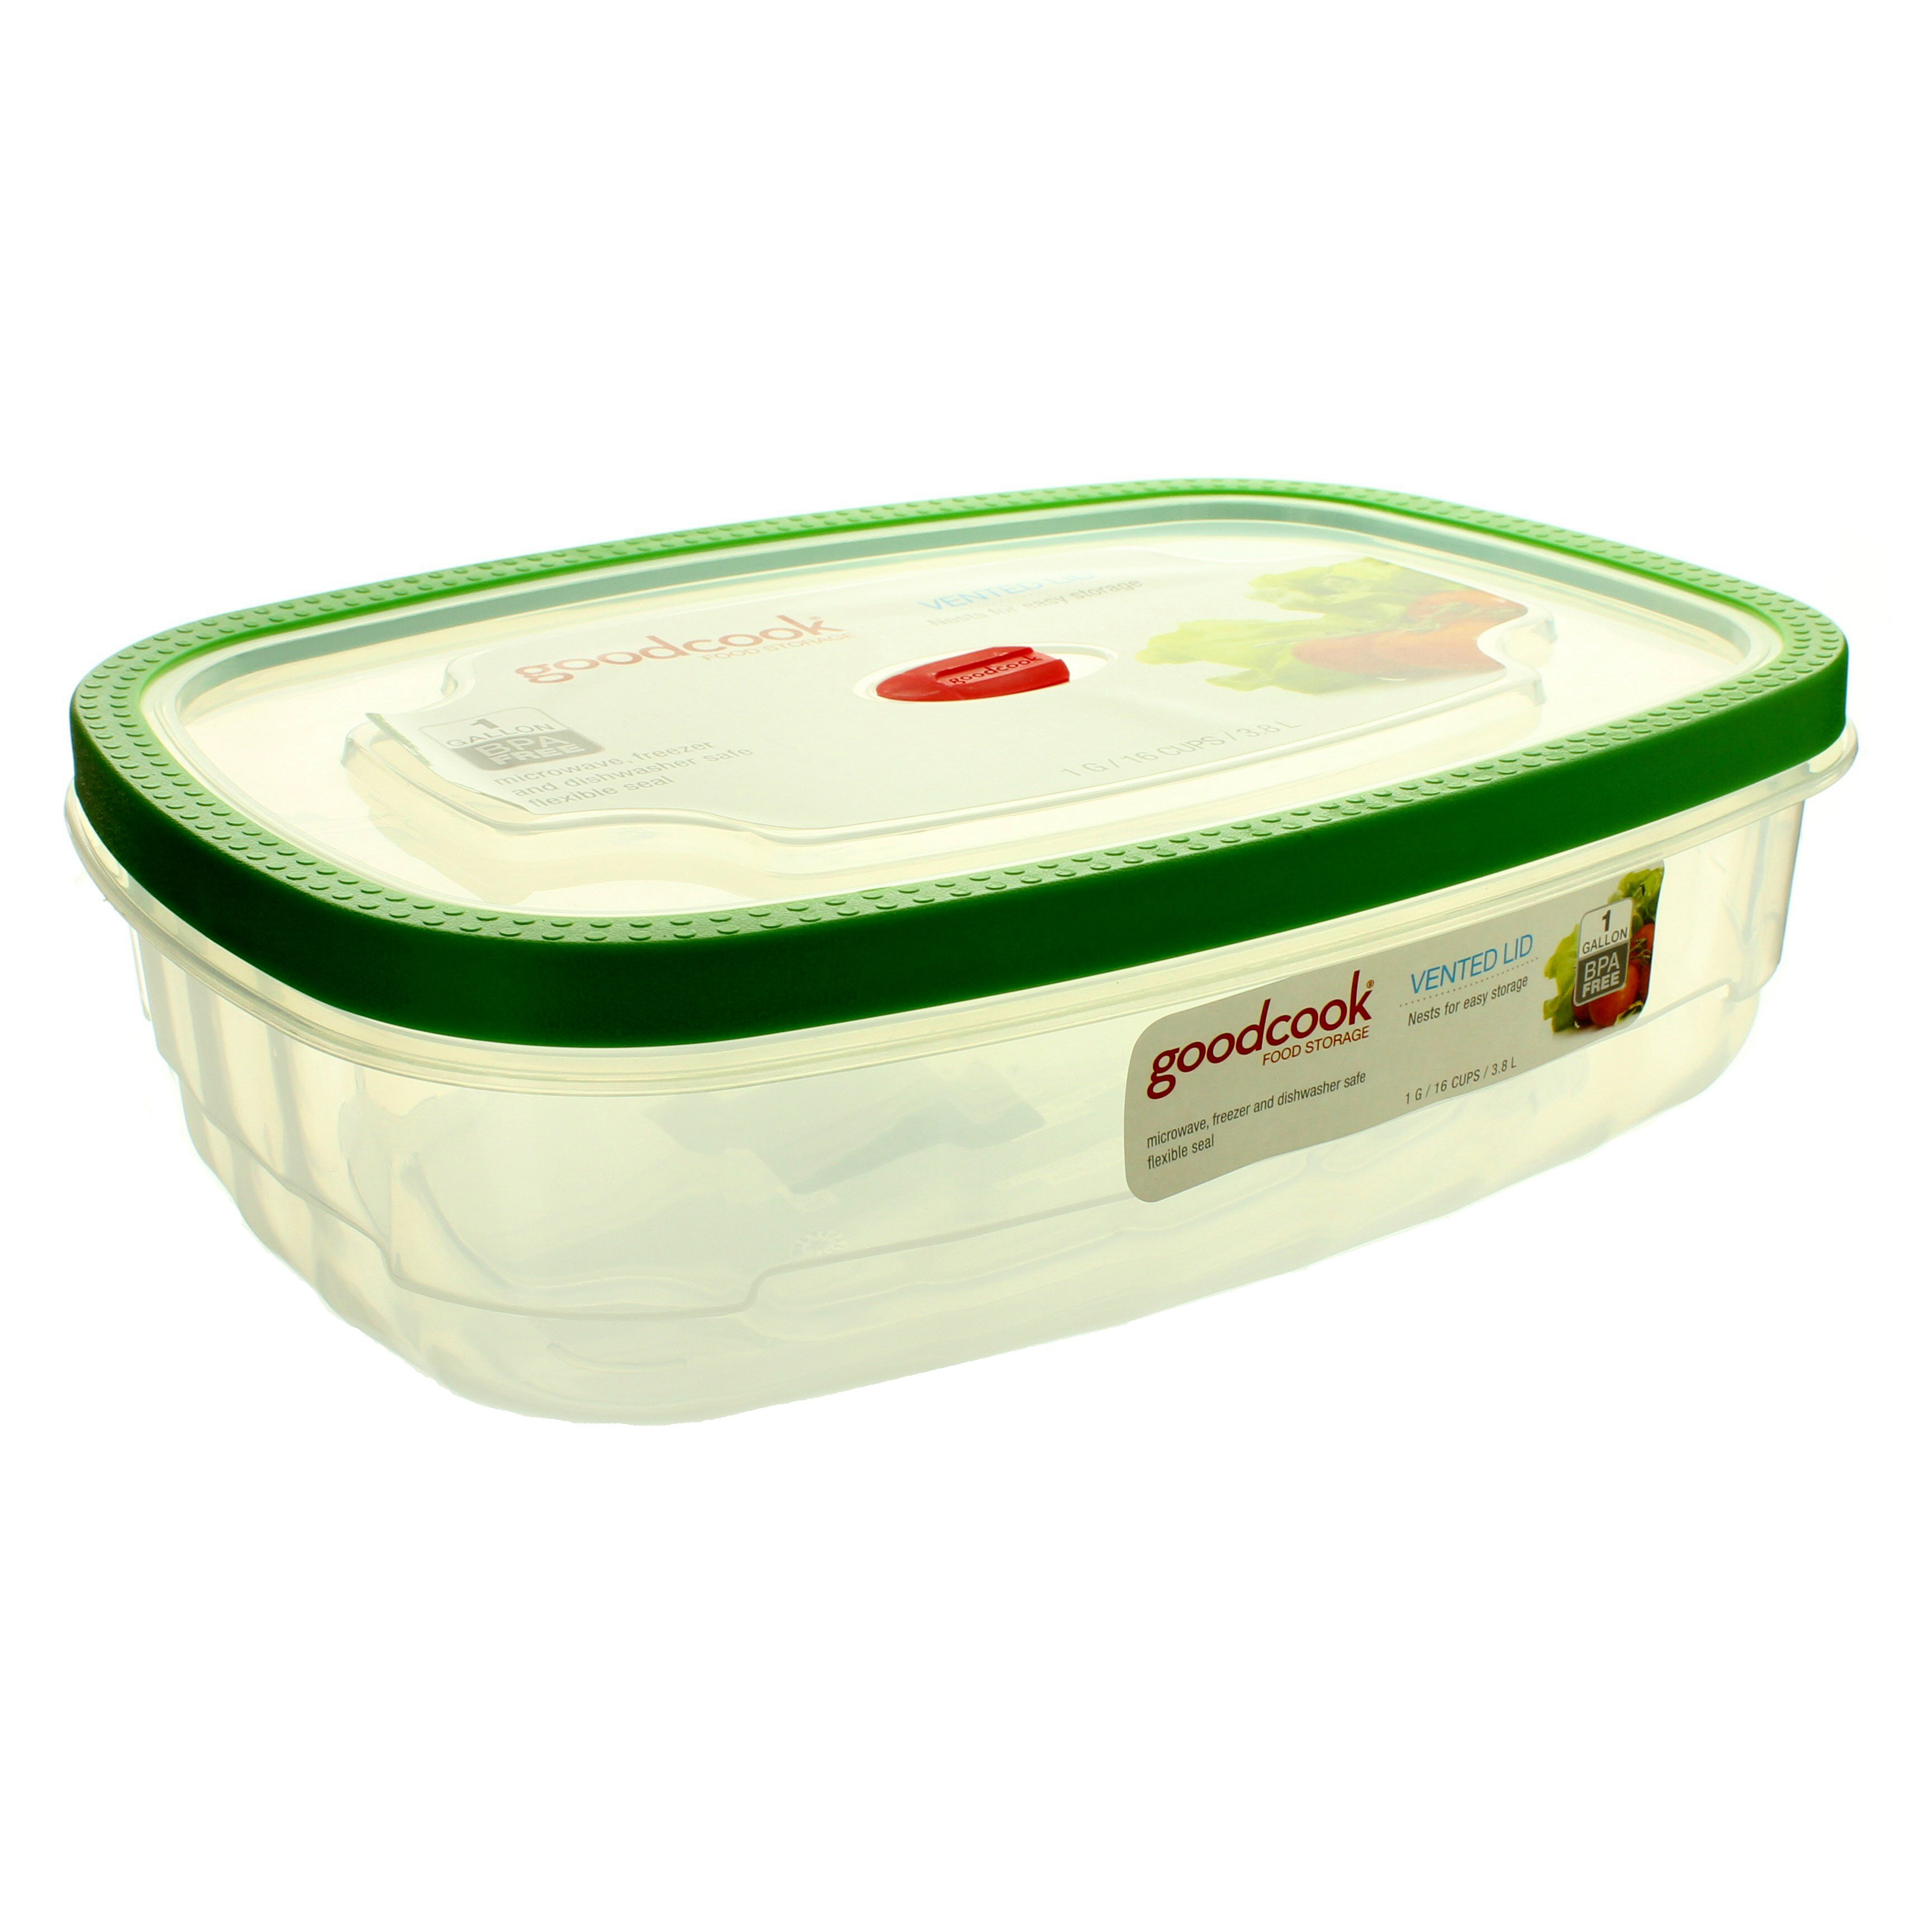 Good Cook Rectangular Food Storage Container With Vented Lid U2011 Shop Food  Storage At Hu2011Eu2011B